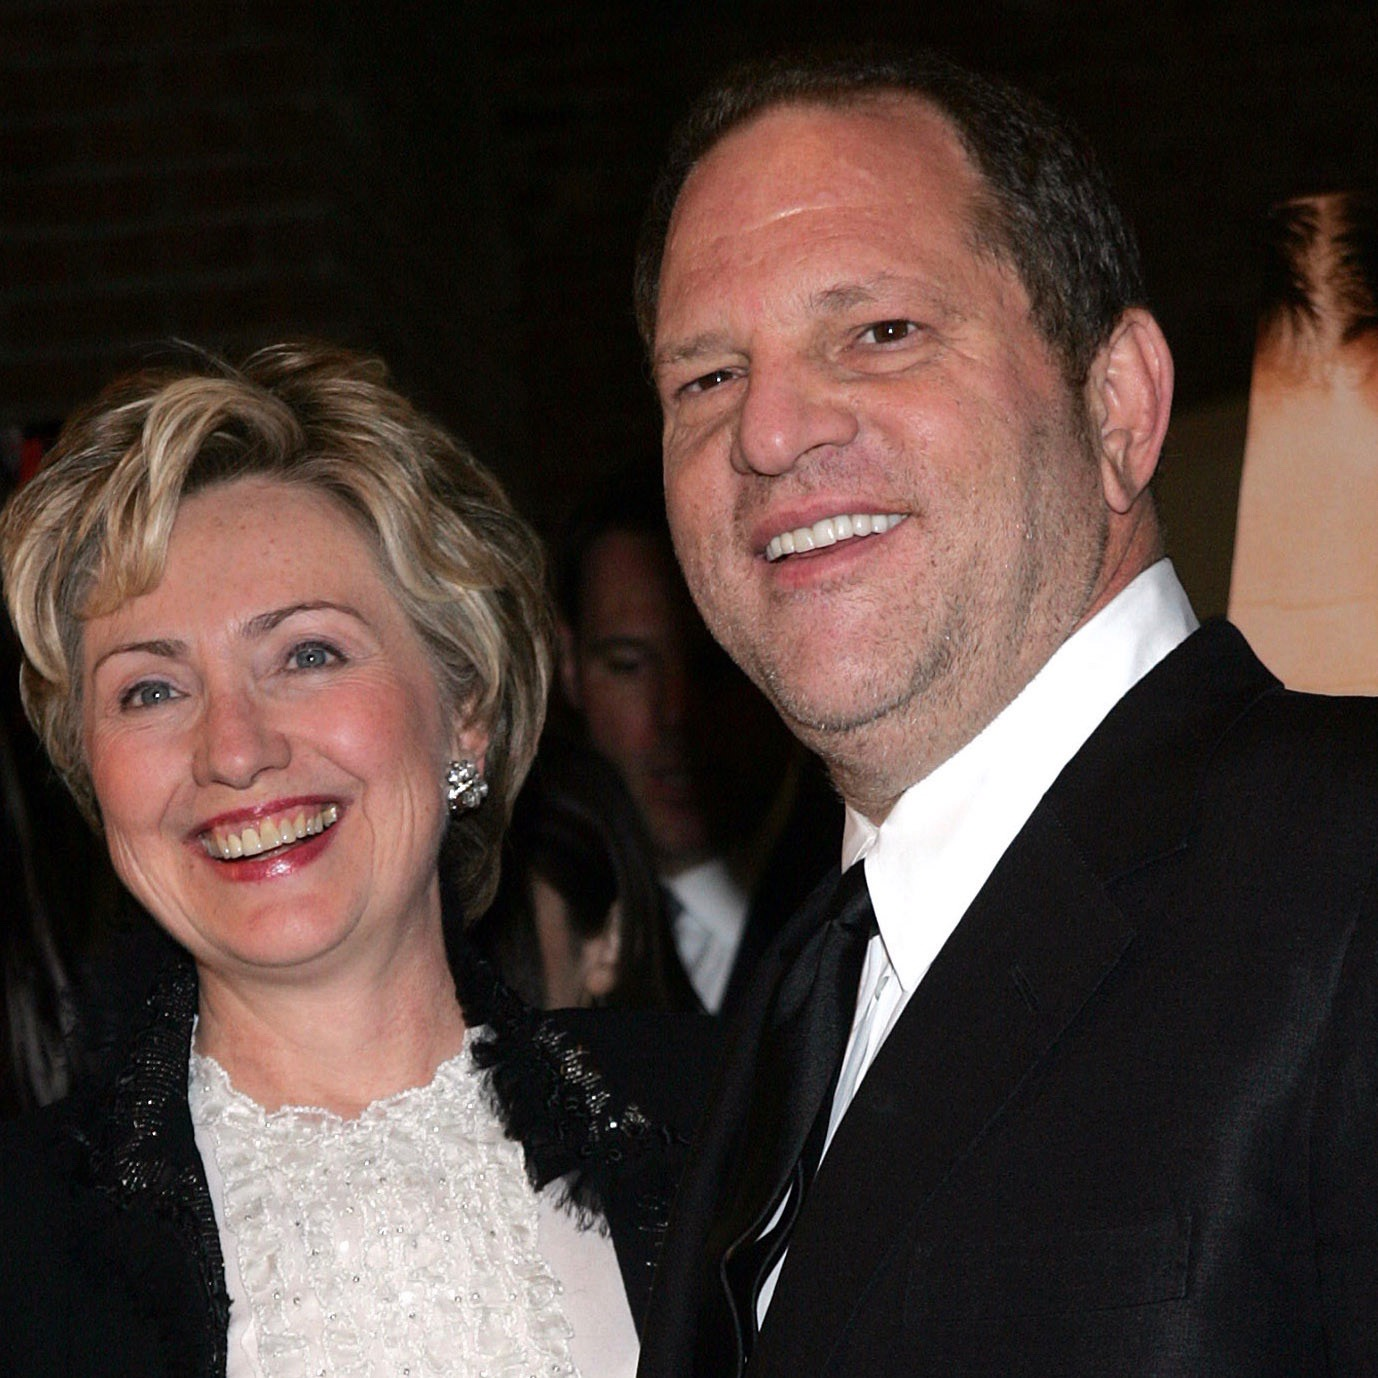 SHAME! Democrats Go Into Hiding After Harvey Weinstein Sexual Assault Revelations [VIDEO]